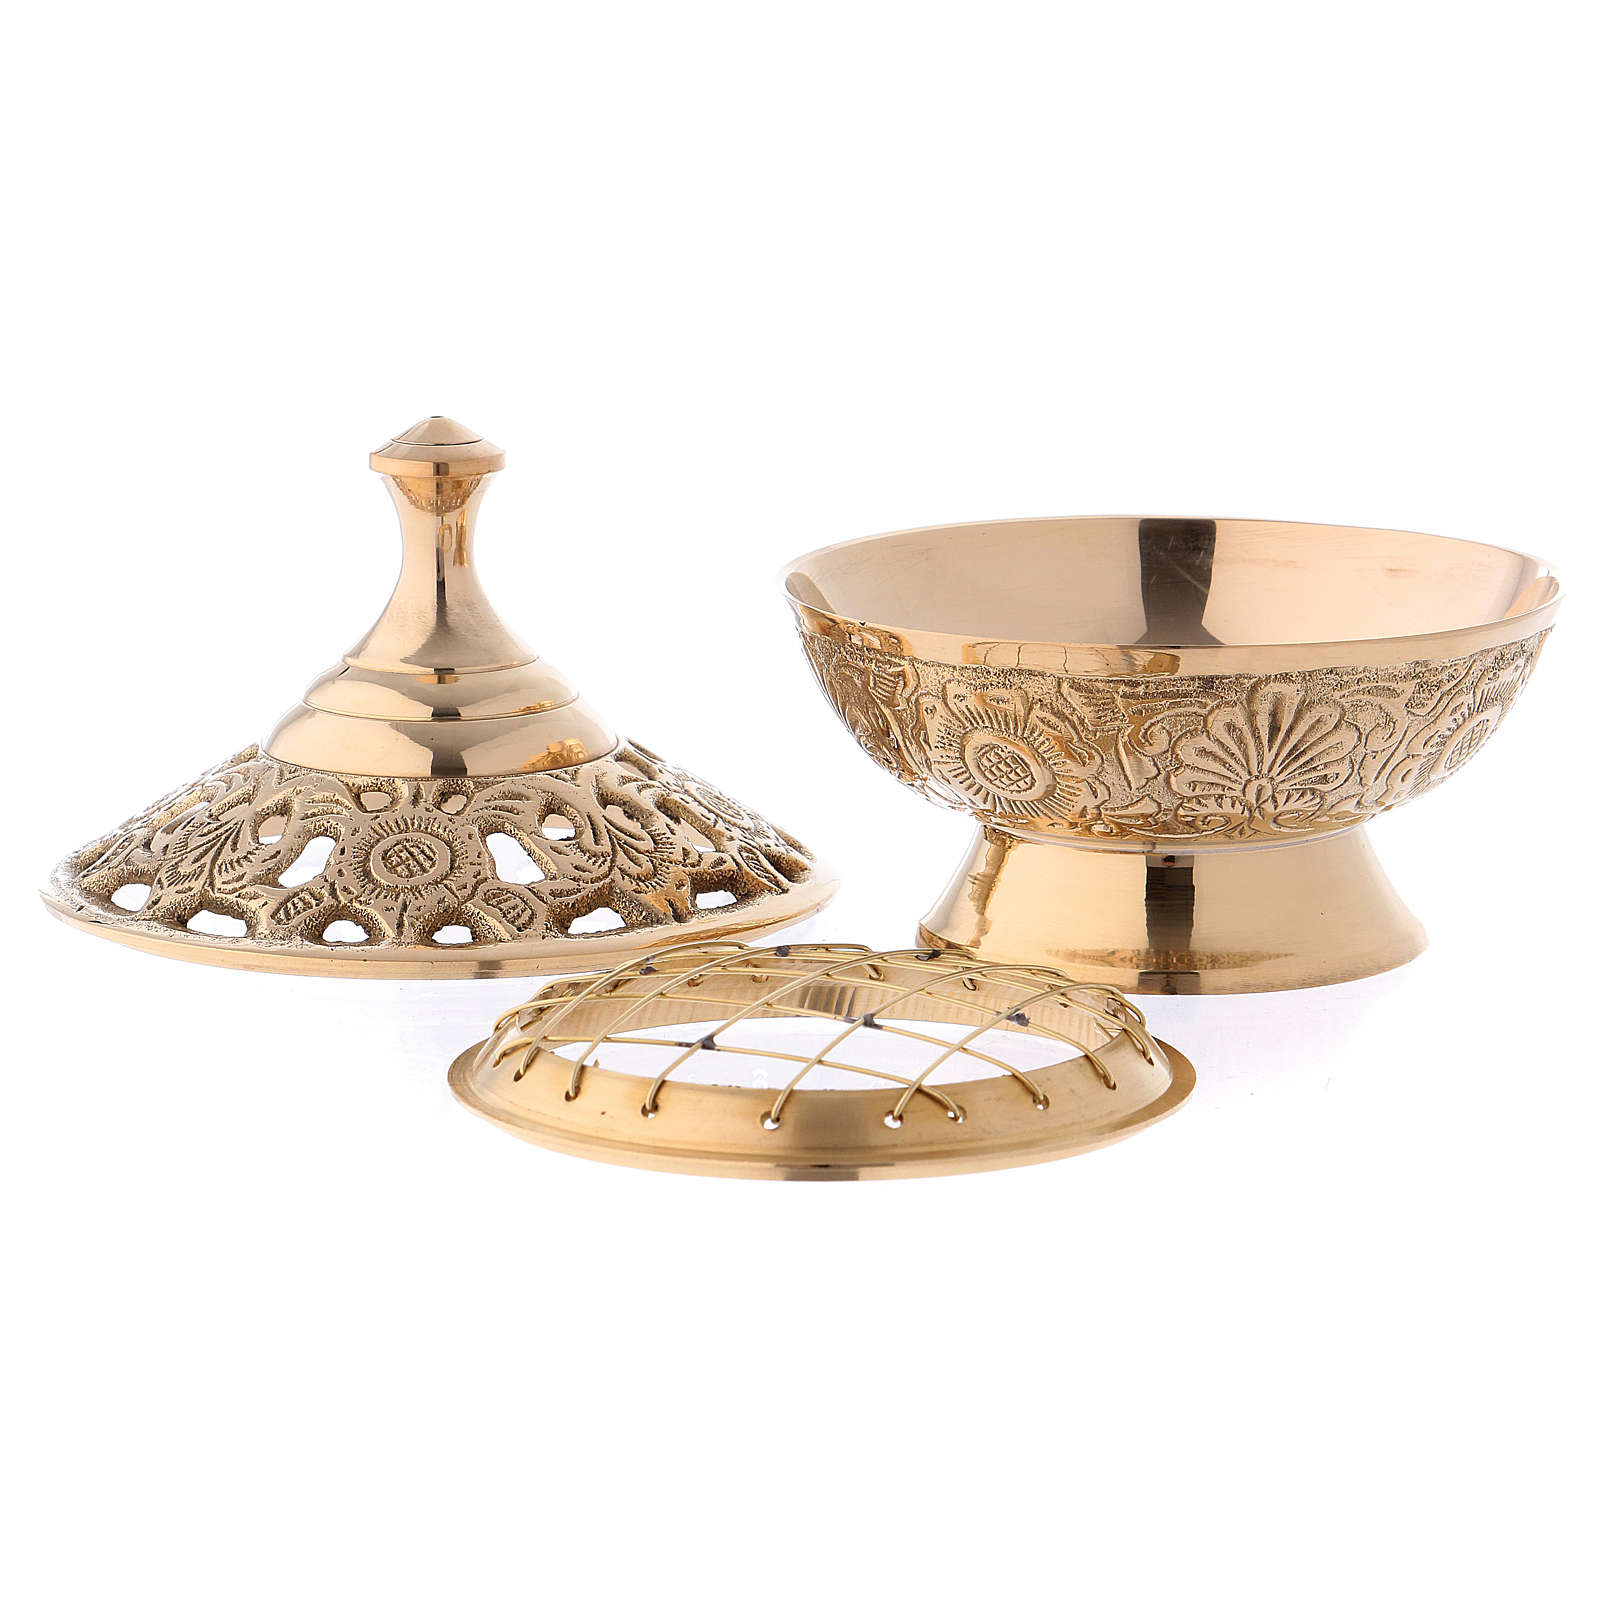 Incense burner in gold-plated brass 11 cm 3